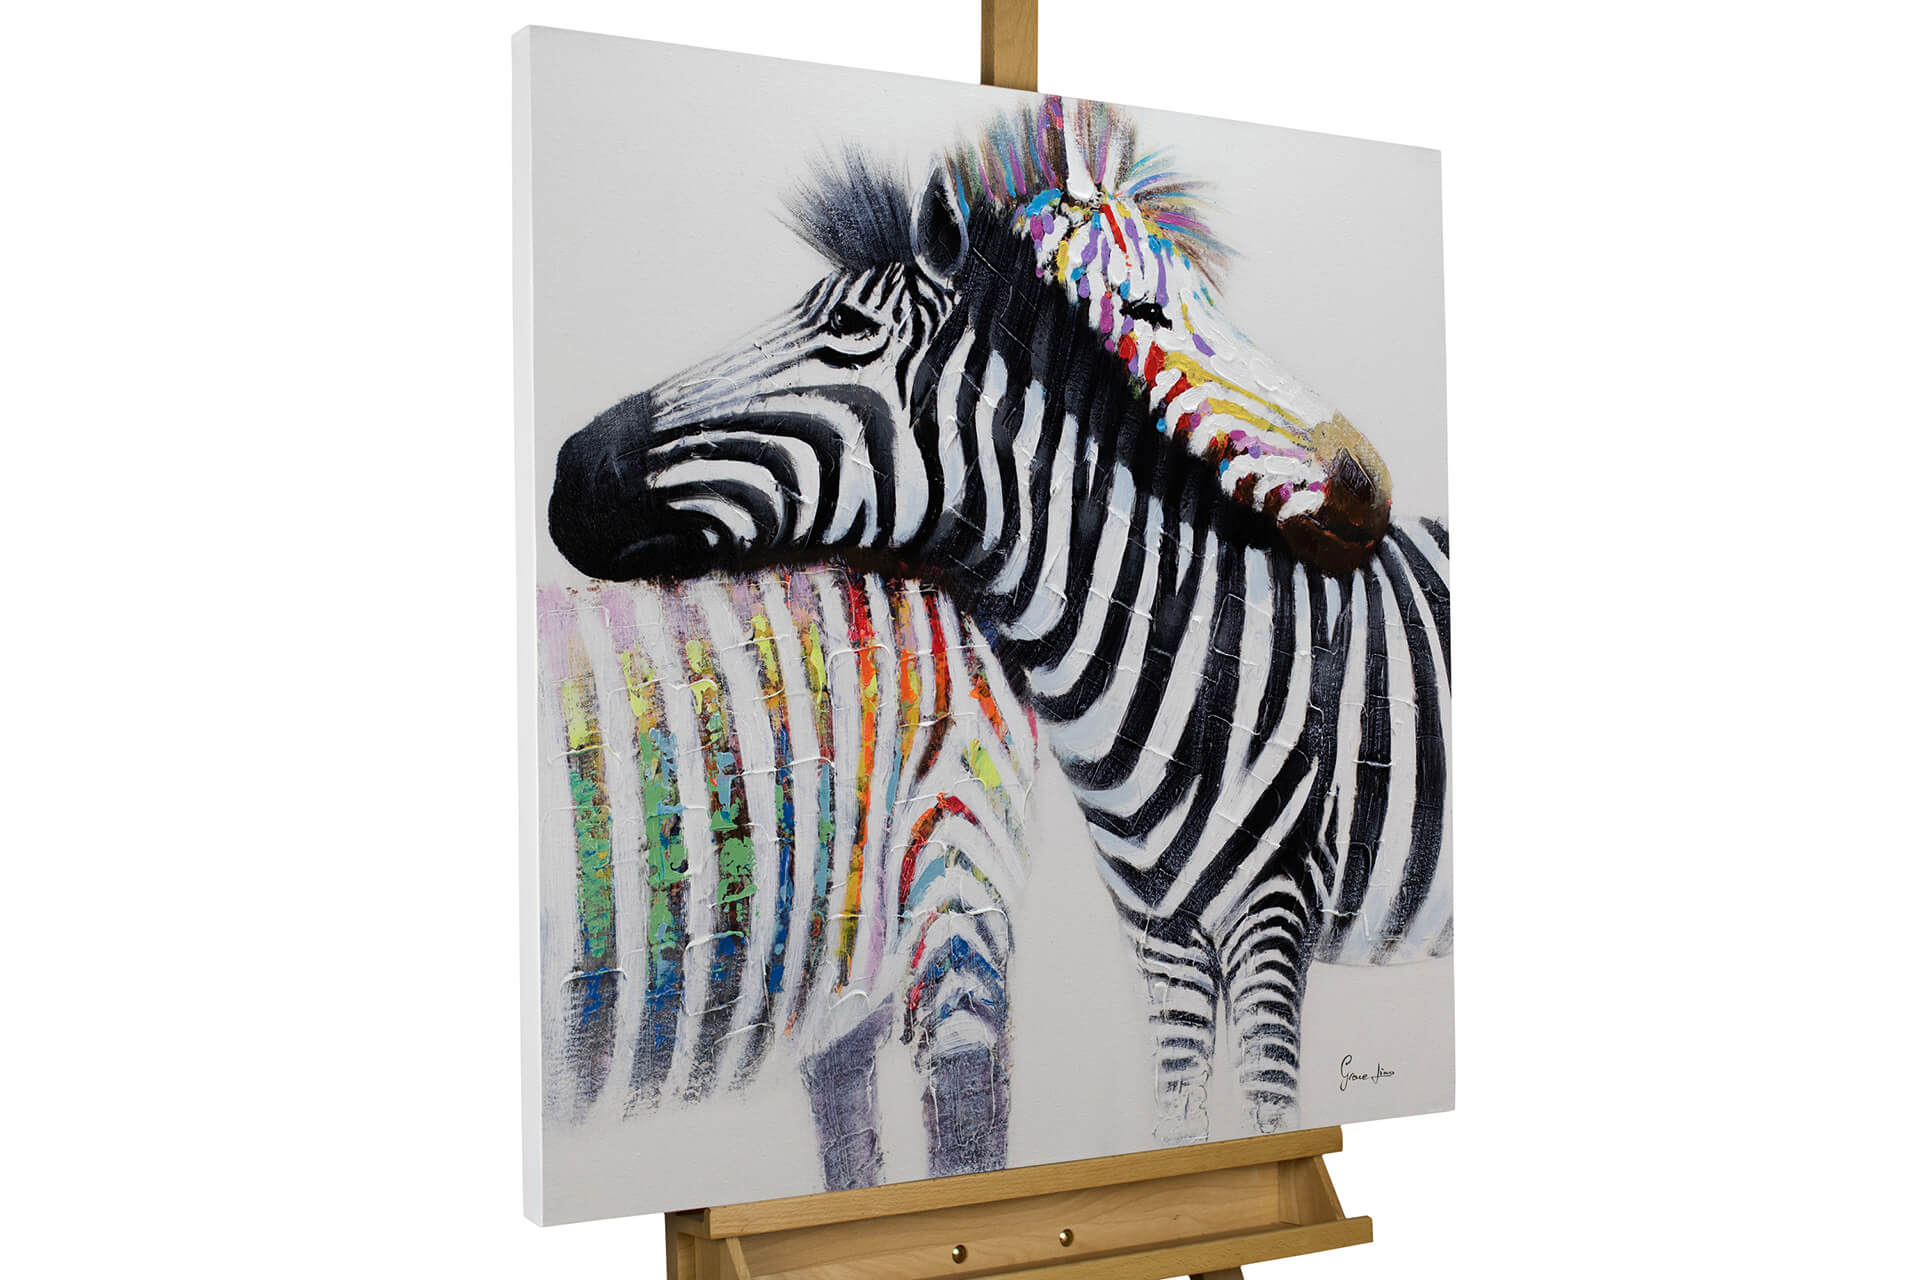 modernes acrylbild mit zebras auf leinwand kunstloft. Black Bedroom Furniture Sets. Home Design Ideas